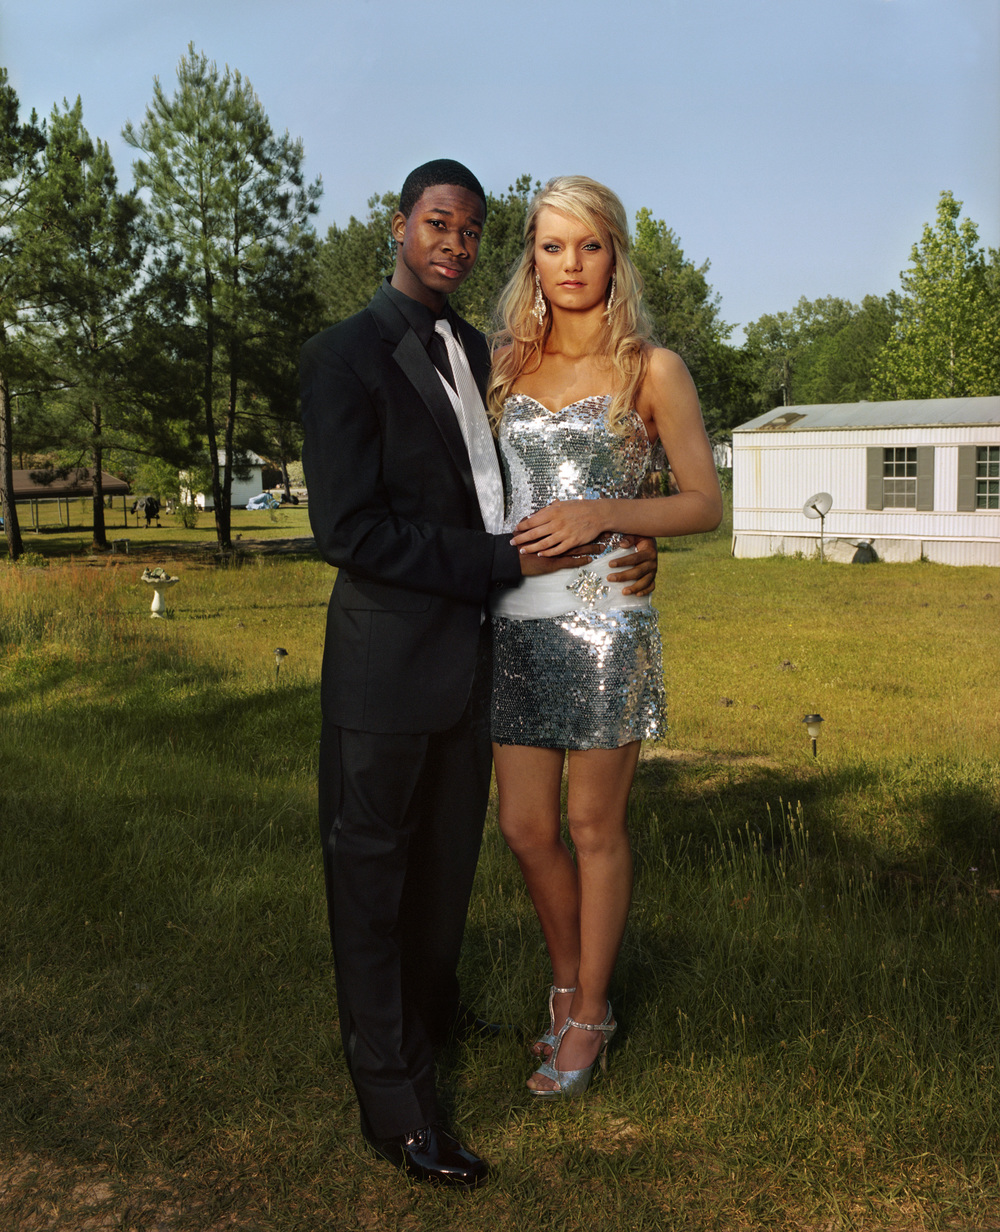 Qu'an and Brooke, Mount Vernon, Georgia, 2012   Two years back, me and Brooke would never be able to go to prom together. It means things are changing. But I still can't believe Justin's gone. If I was him, I would've run too. We were raised that we are guilty until proven innocent and when you see a white man or cop with a gun, you run.  —Qu'an